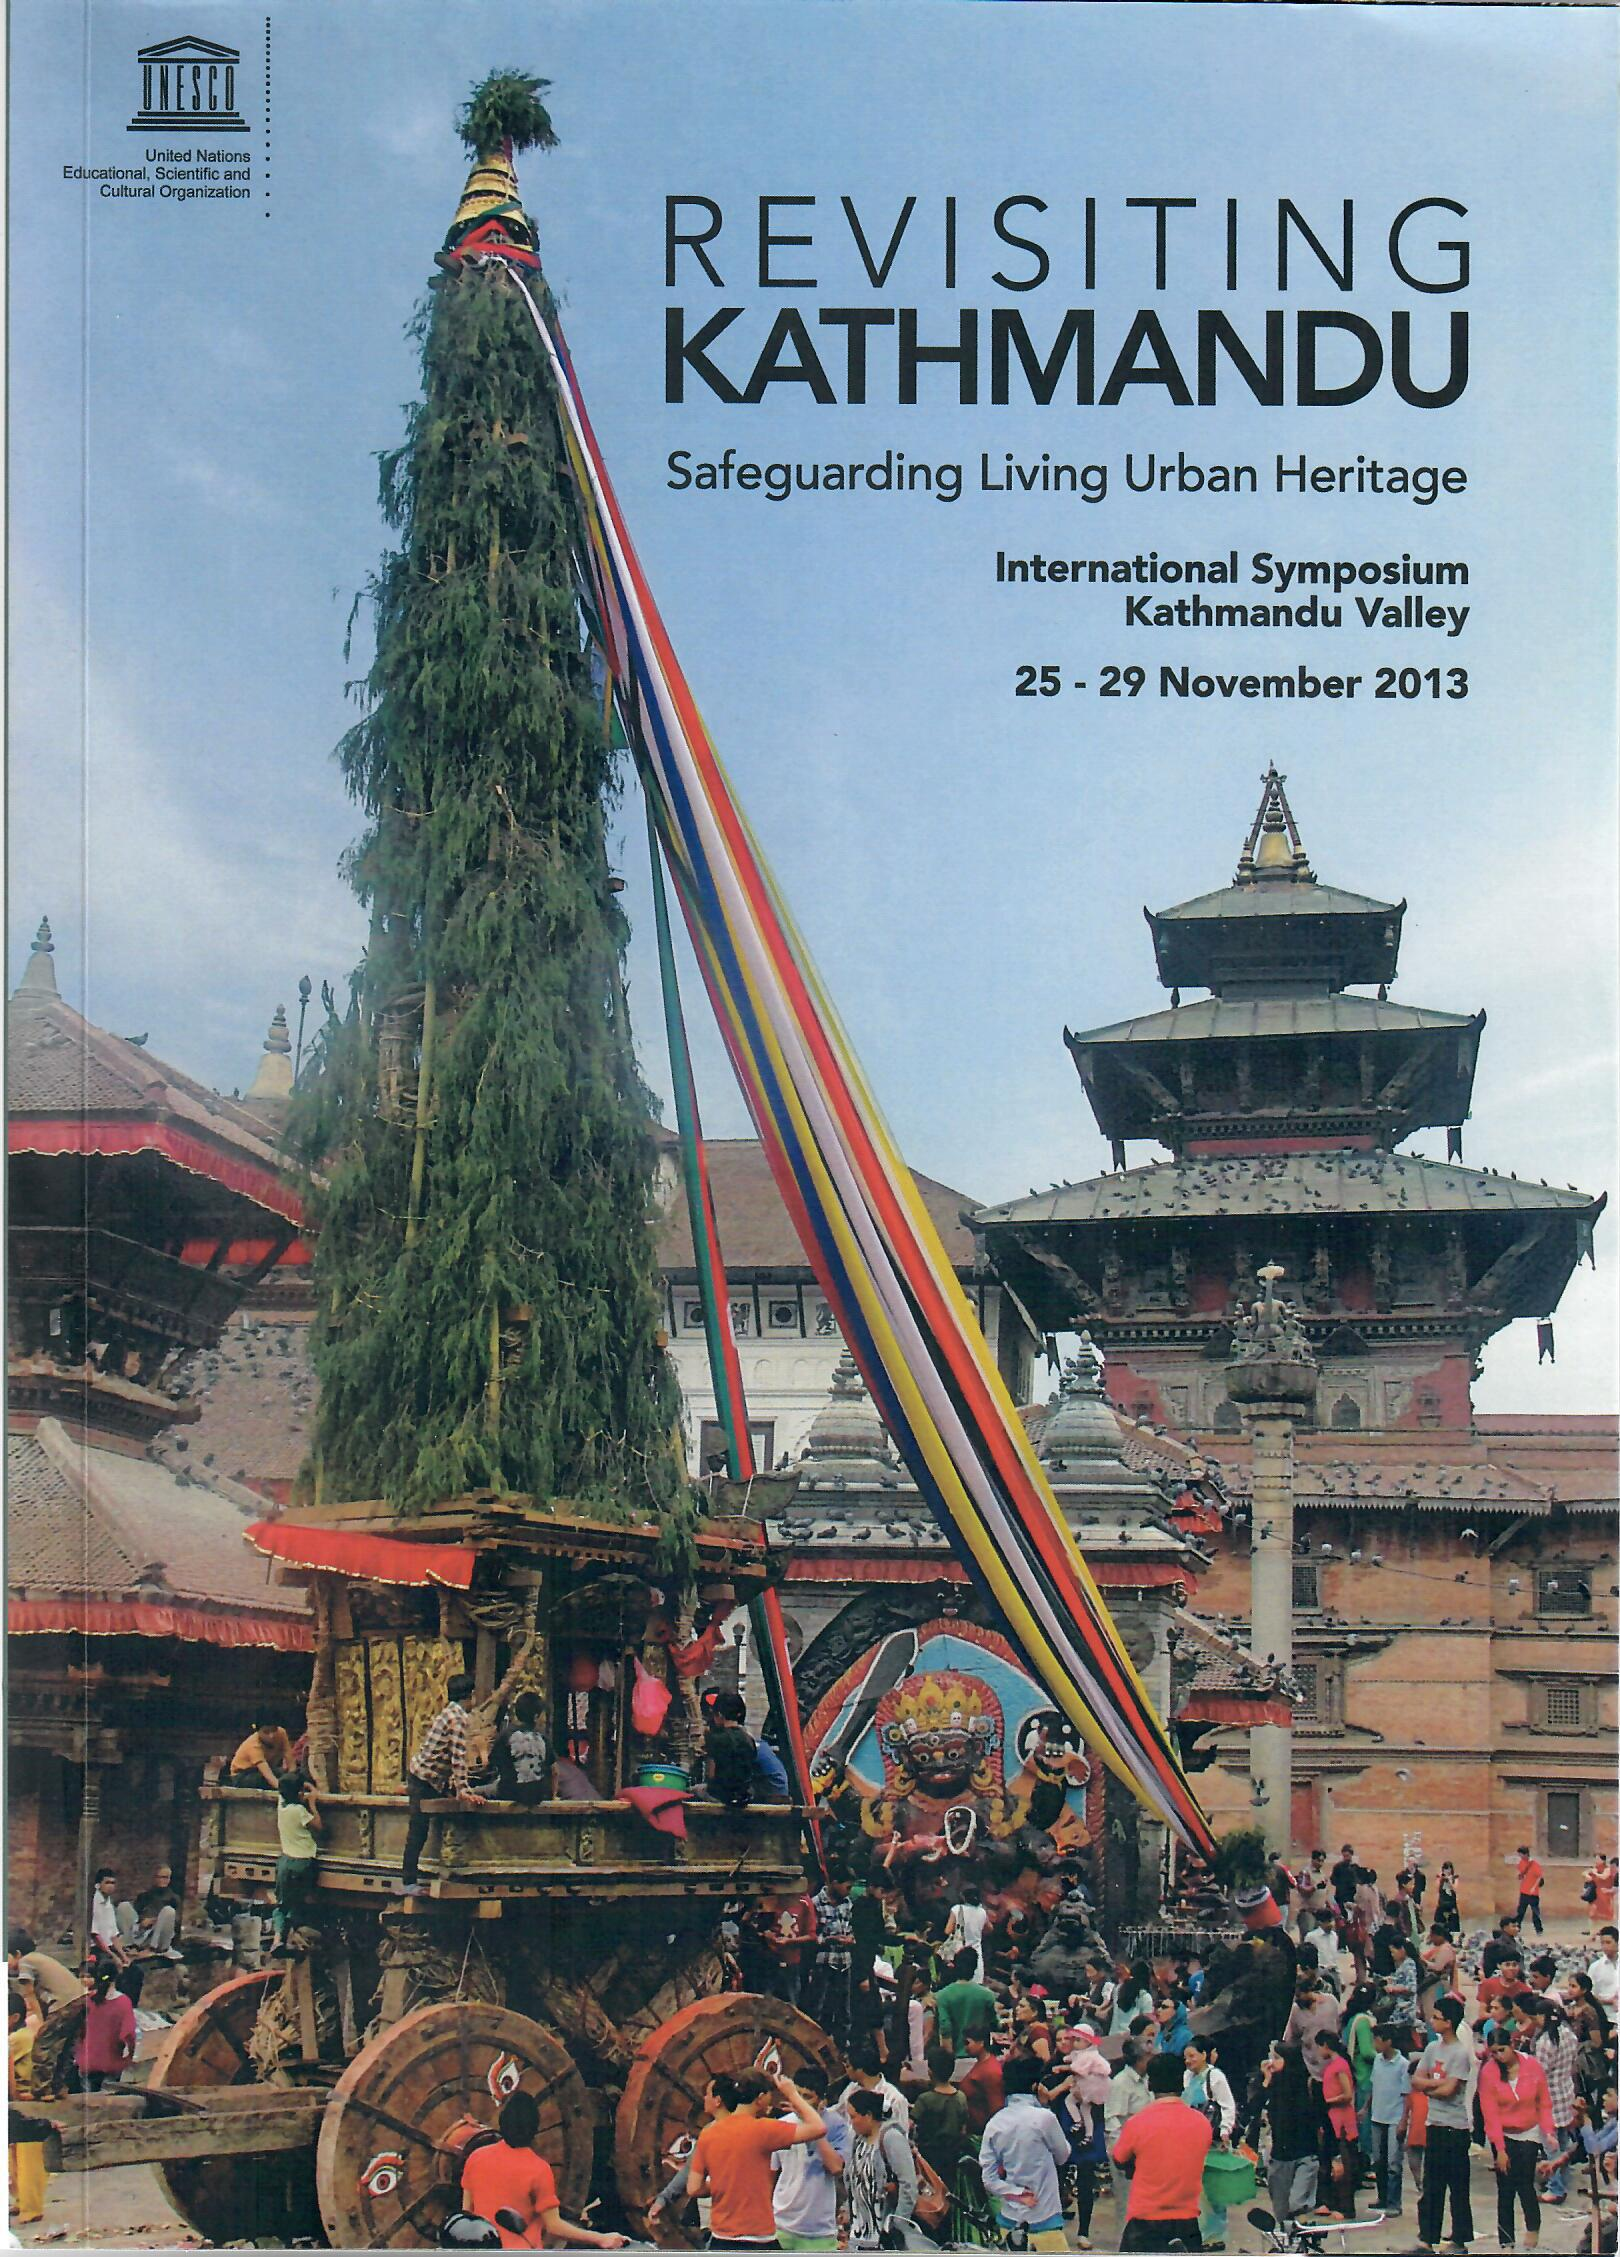 """Revisiting Kathmandu, Safeguarding Living Urban Heritage""- International Symposium Kathmandu Valley"